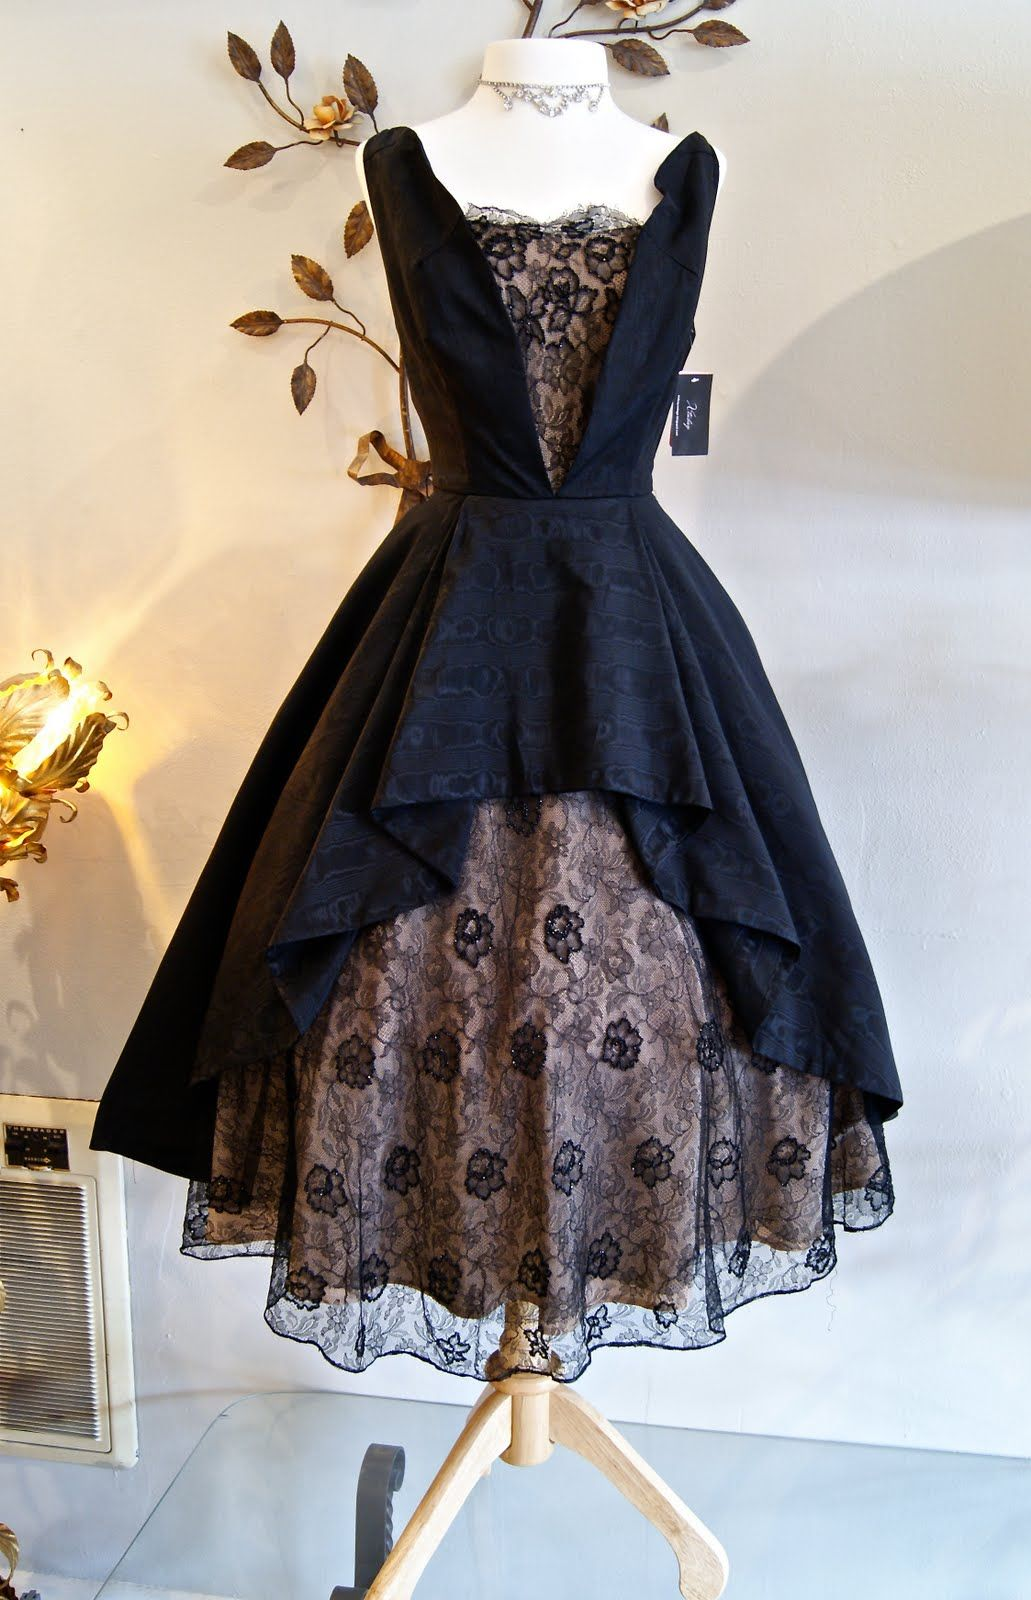 Vintage Dress From Xtabay So Pretty I Wonder If I